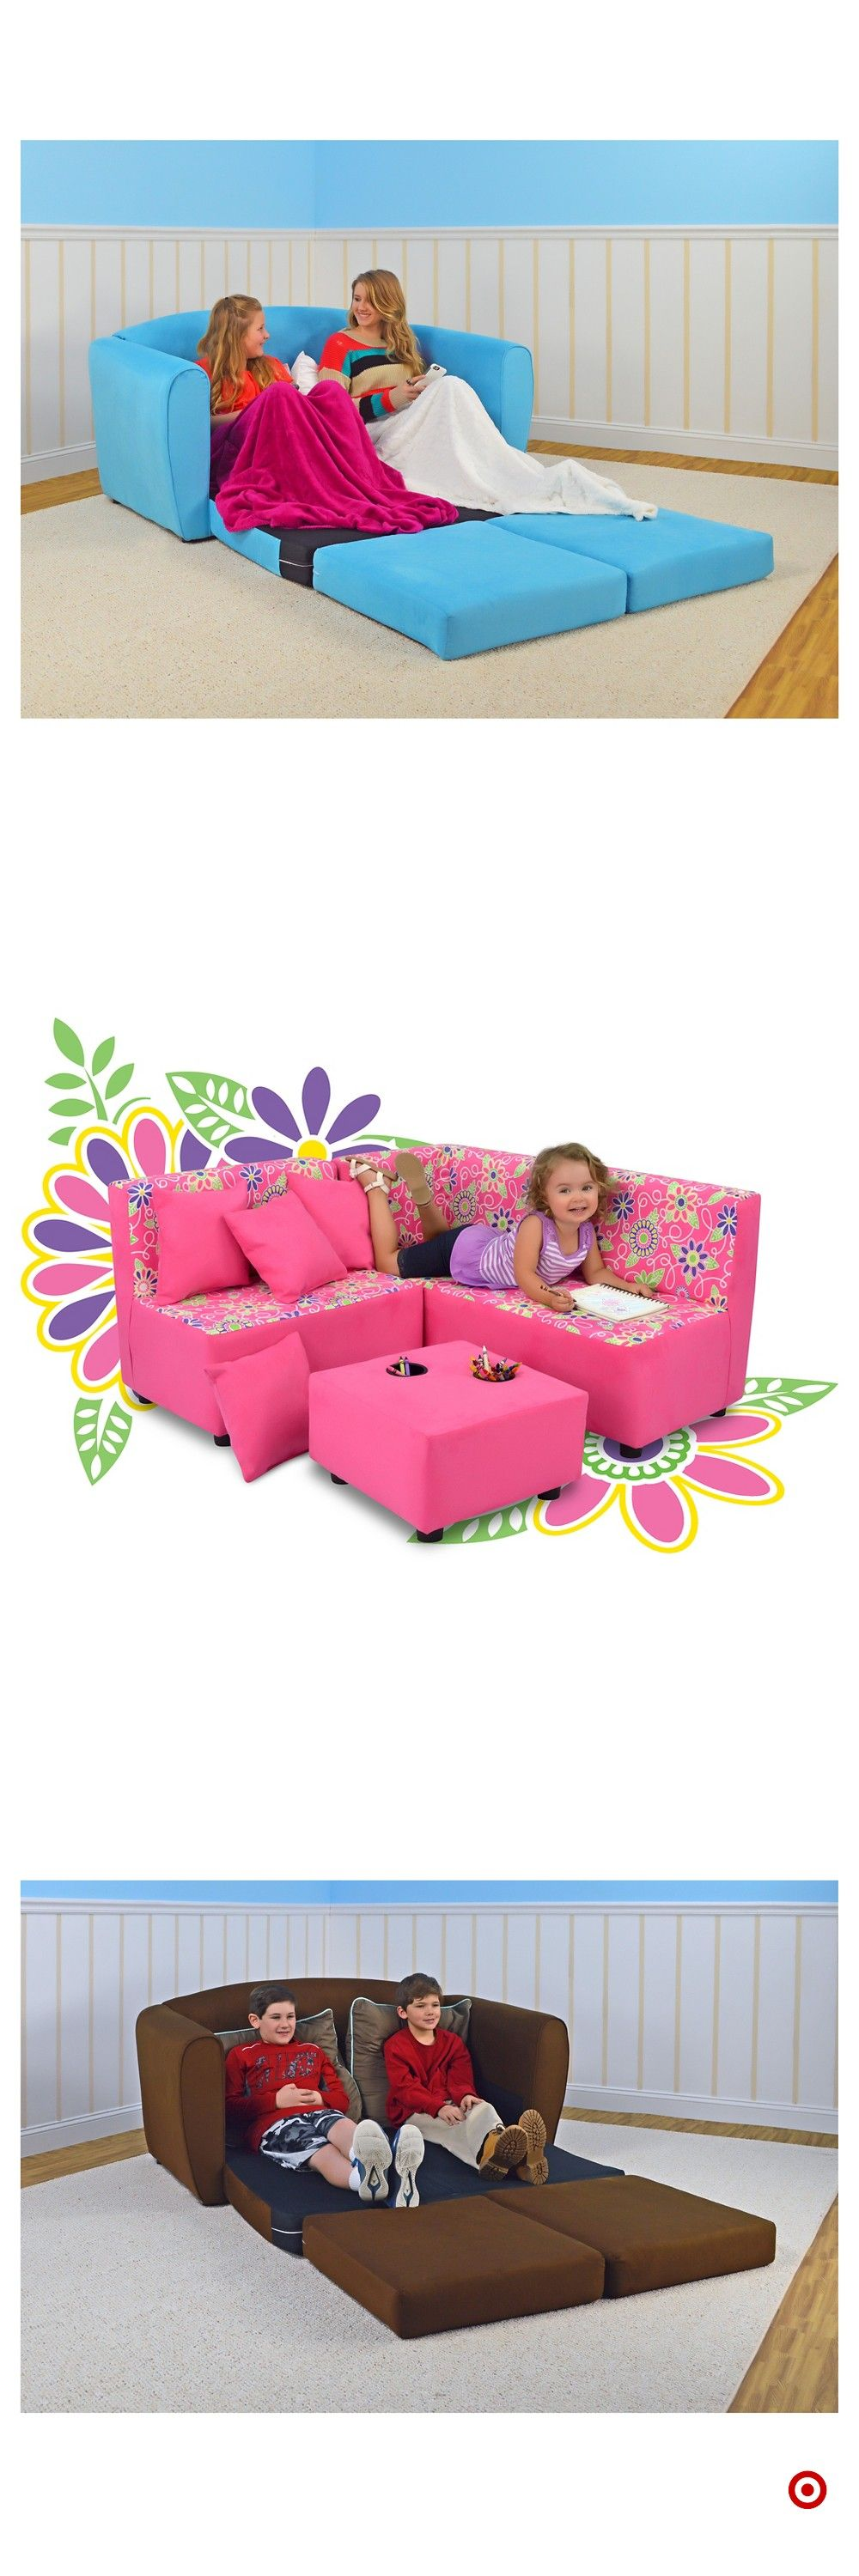 Shop Target For Kids Sofa You Will Love At Great Low Prices Free Shipping On Orders Of 35 Or Free Same Day Pick Up In Sto Kids Sofa Kids Room Kids Furniture